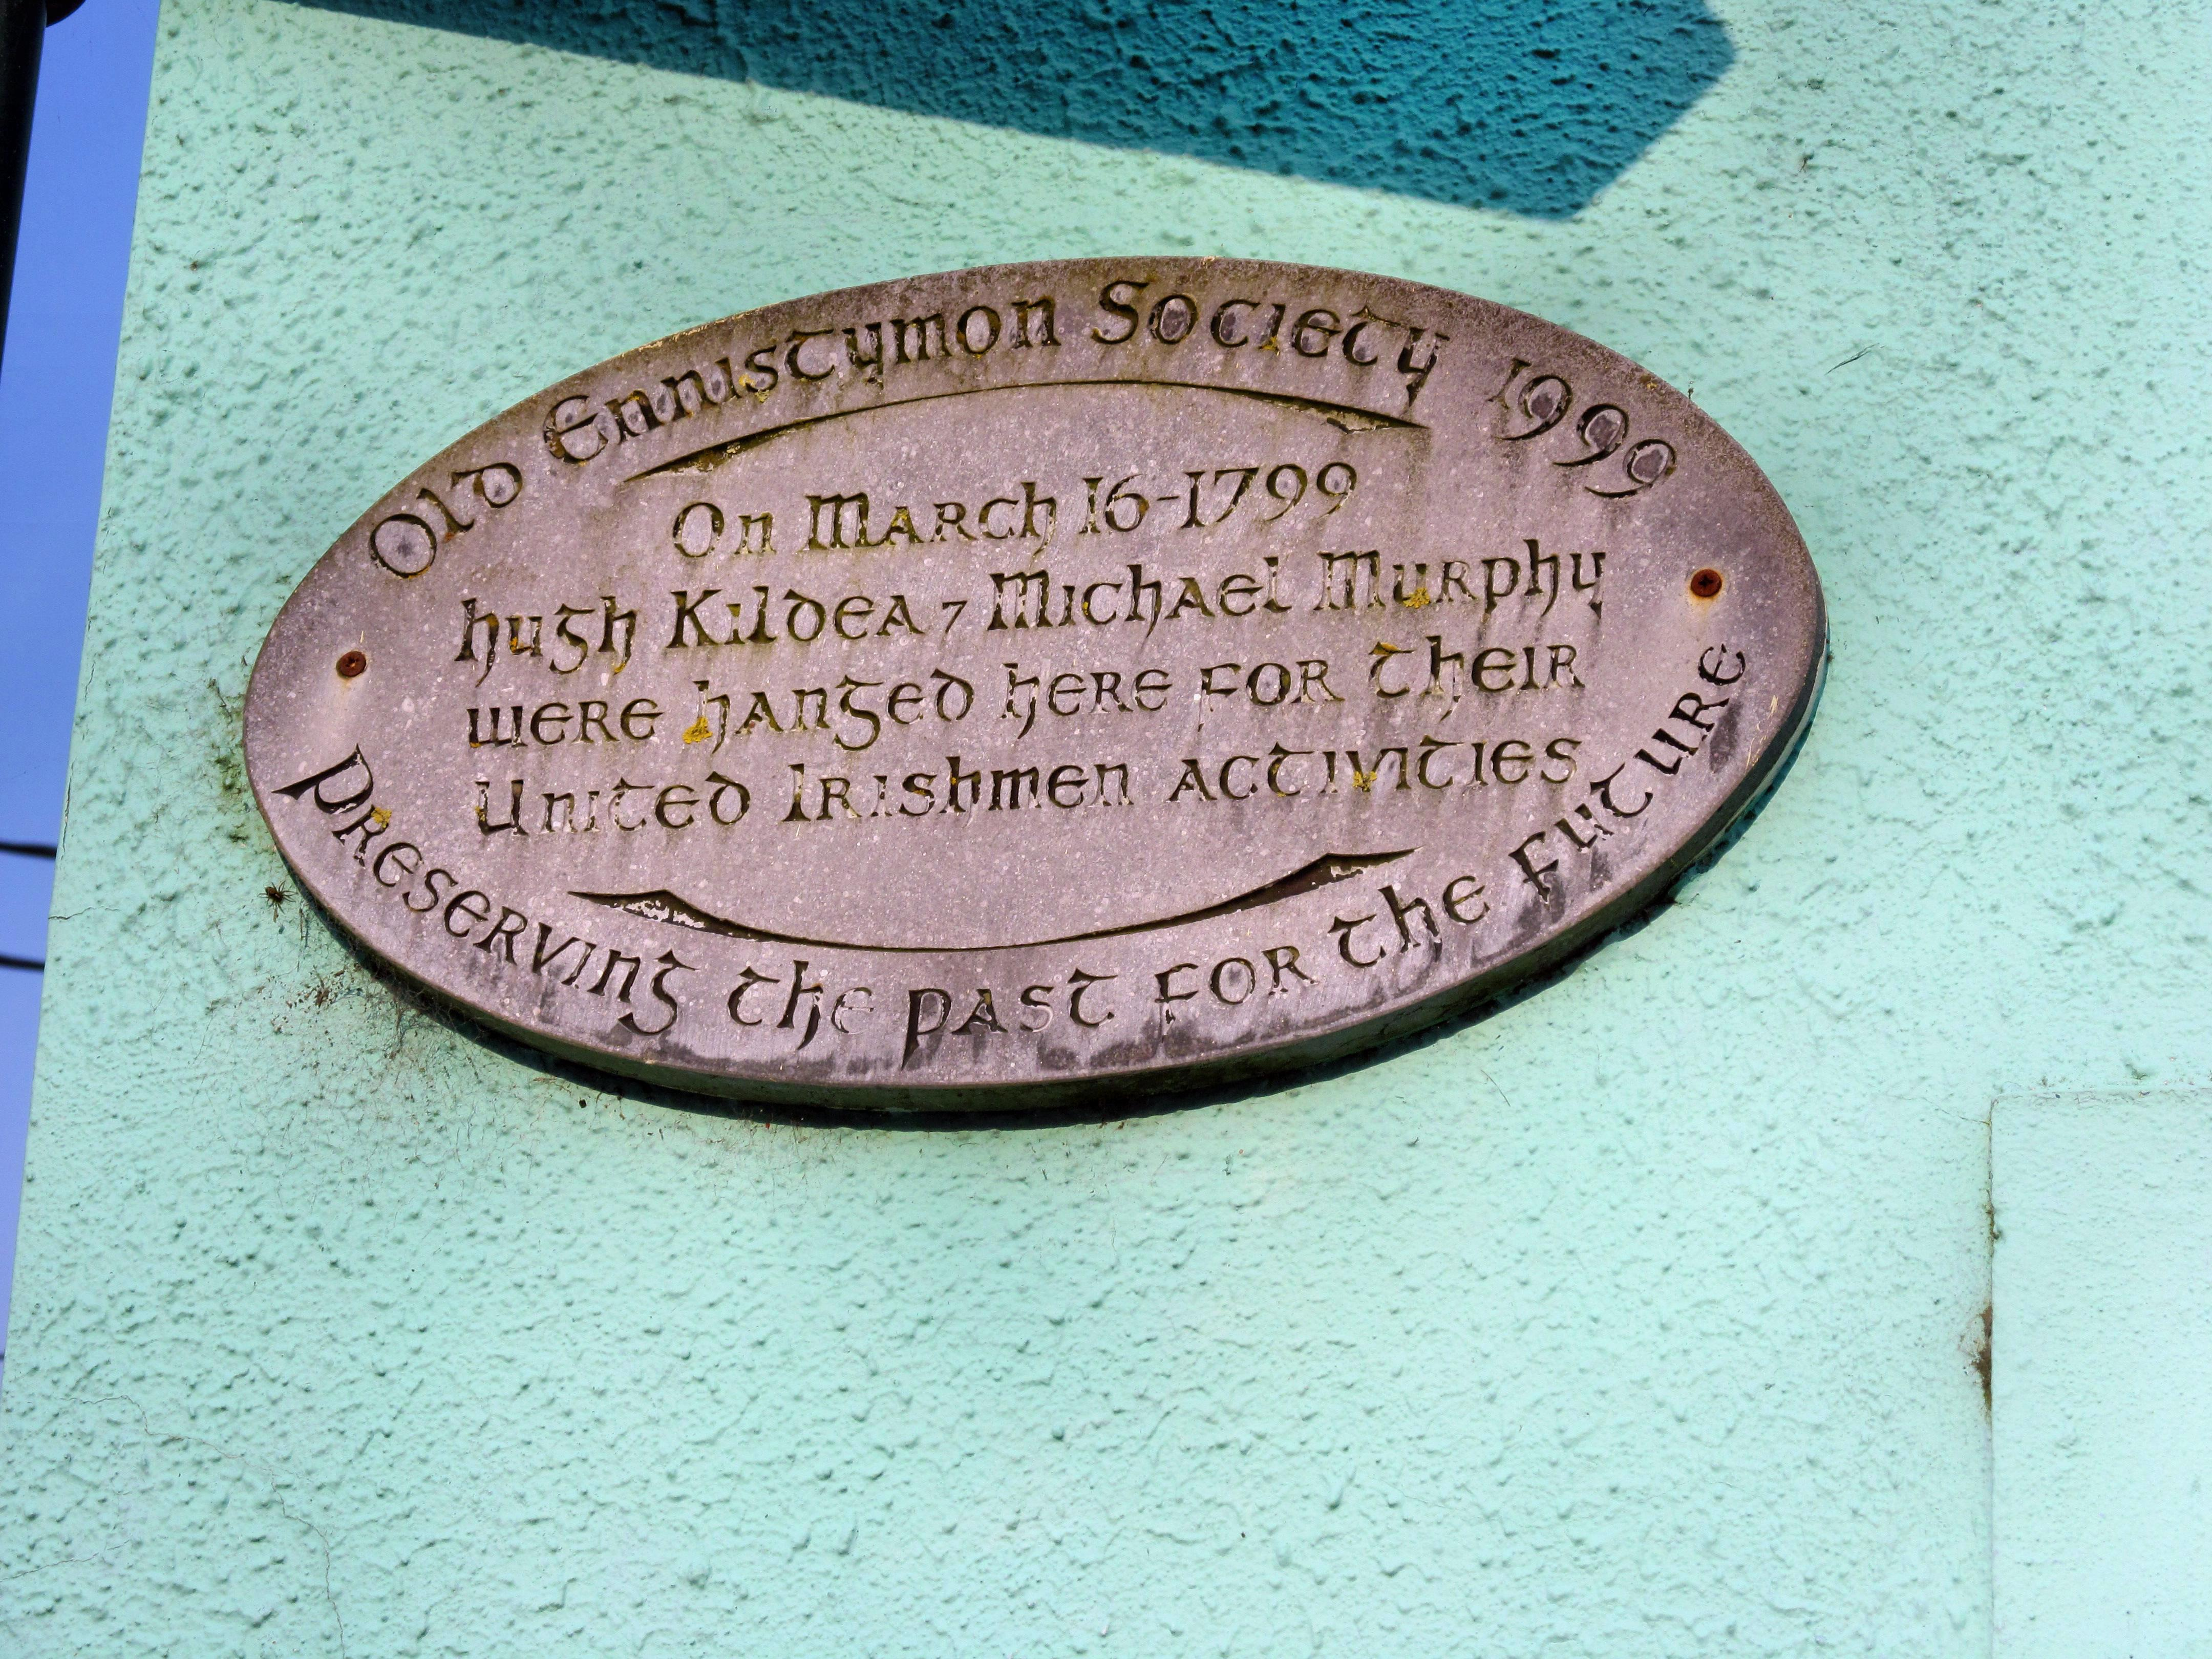 Plaque in Ennistymon inmemory of Hugh Kildea and Michael Murphy, hanged for their part in the United Irishman rebellion of 1798